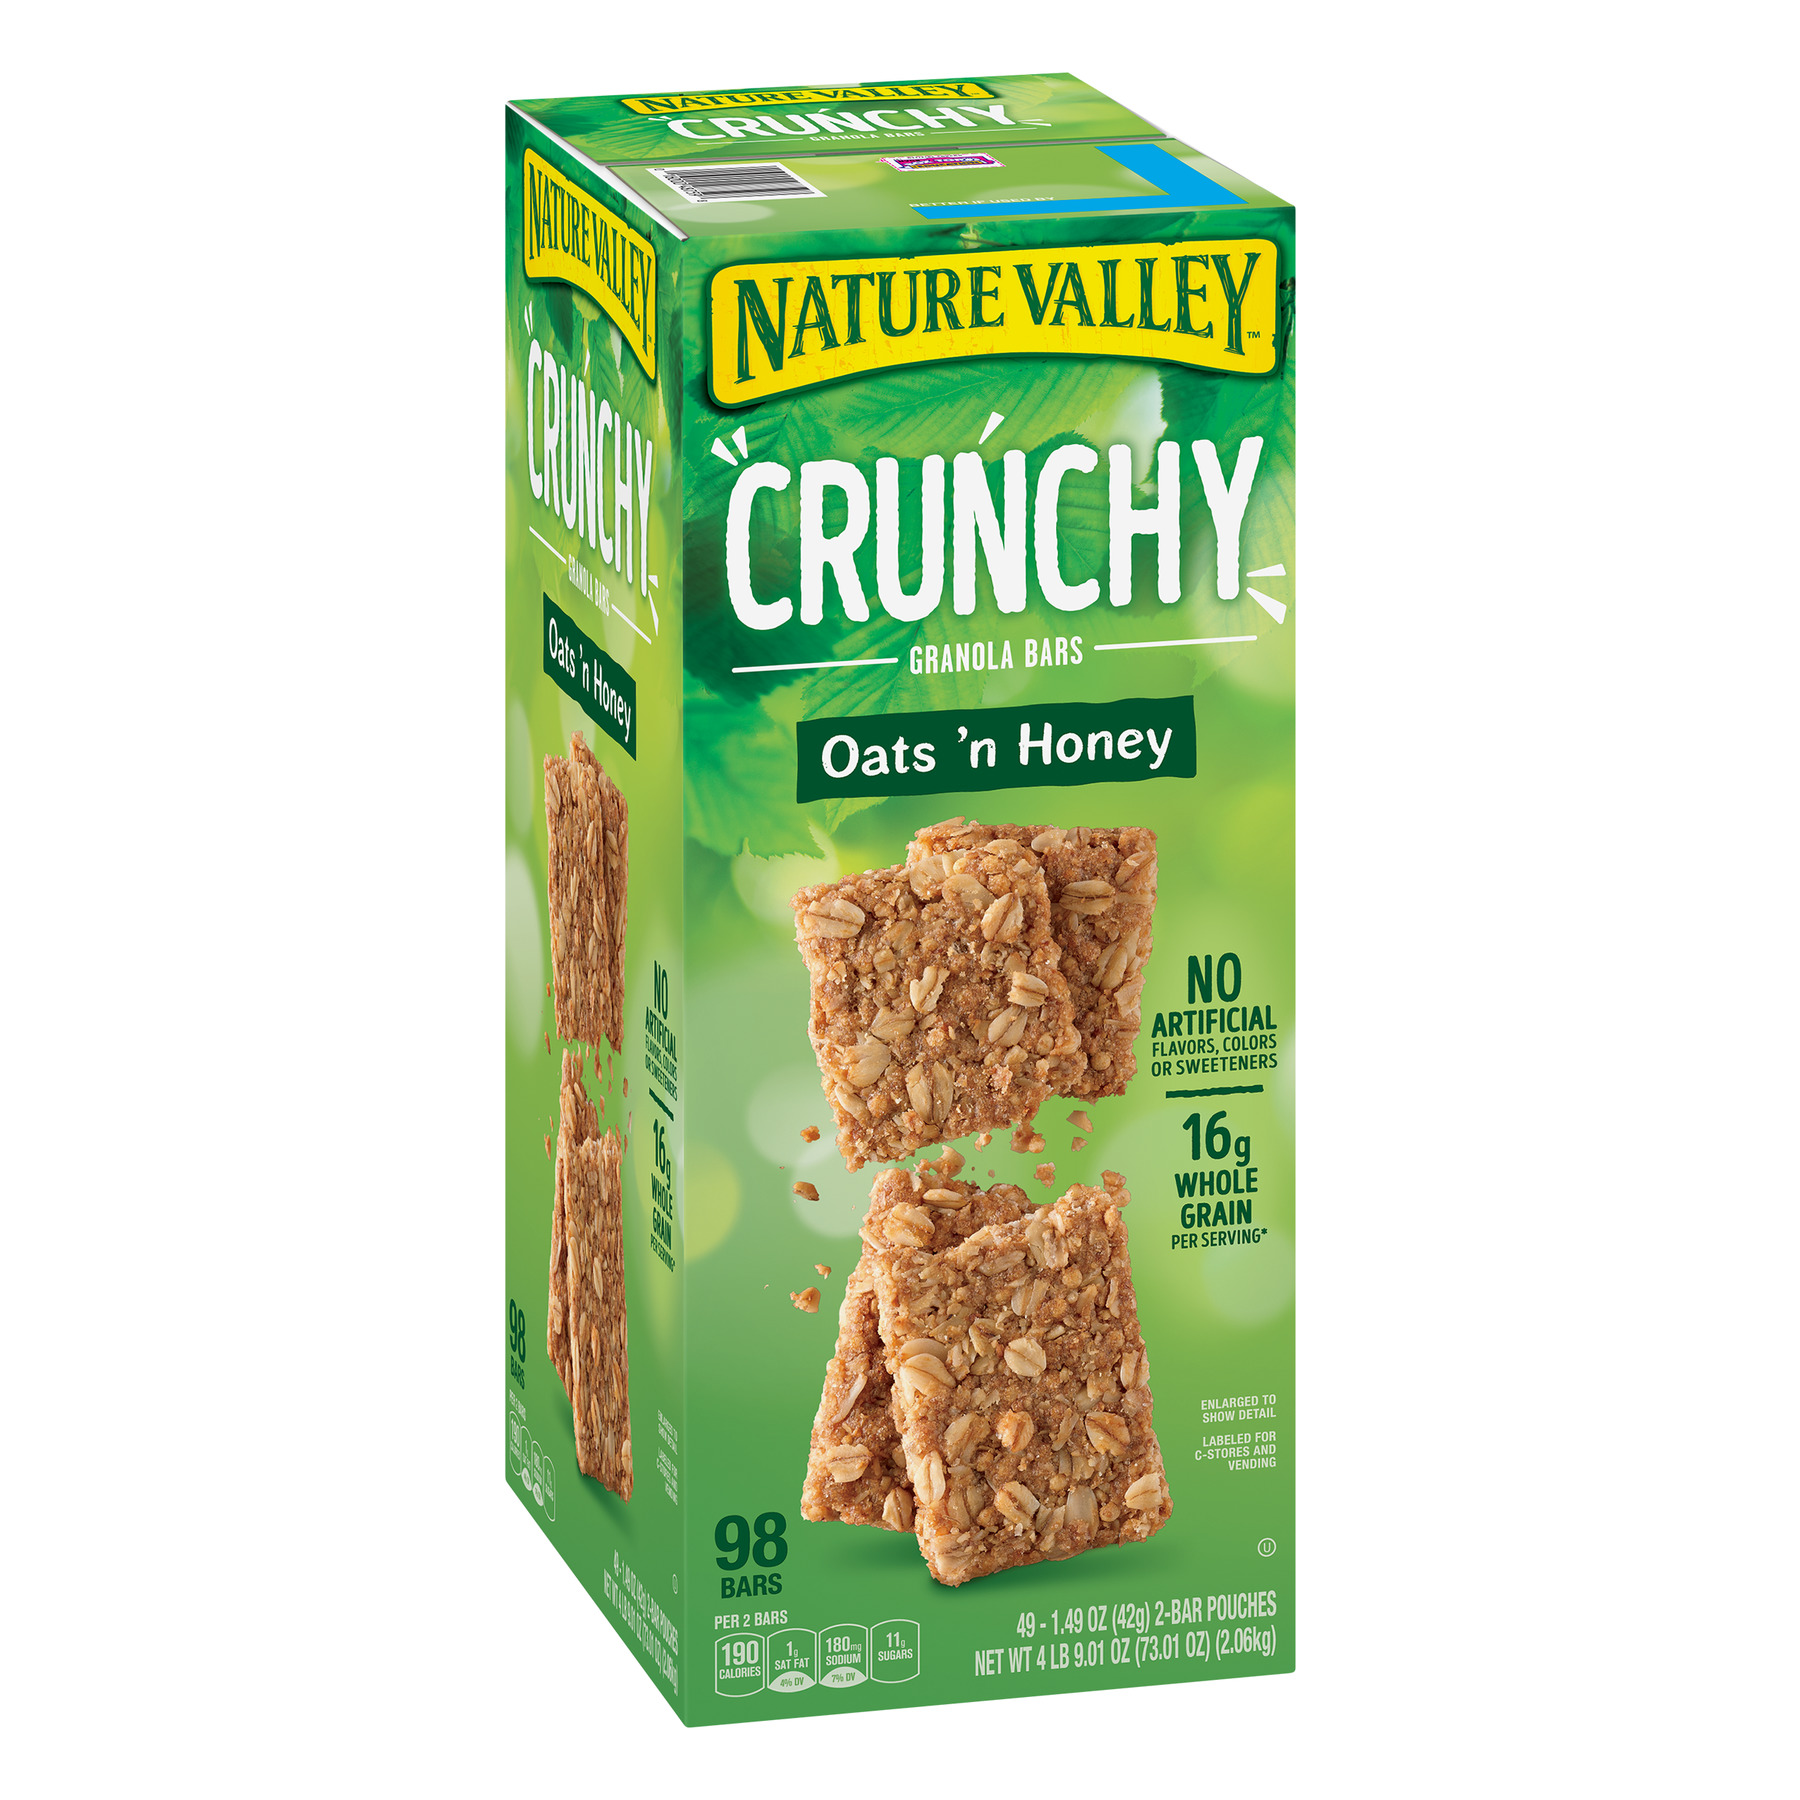 Nature Valley Oats 'N Honey Crunchy Granola Bars, 73.01 oz